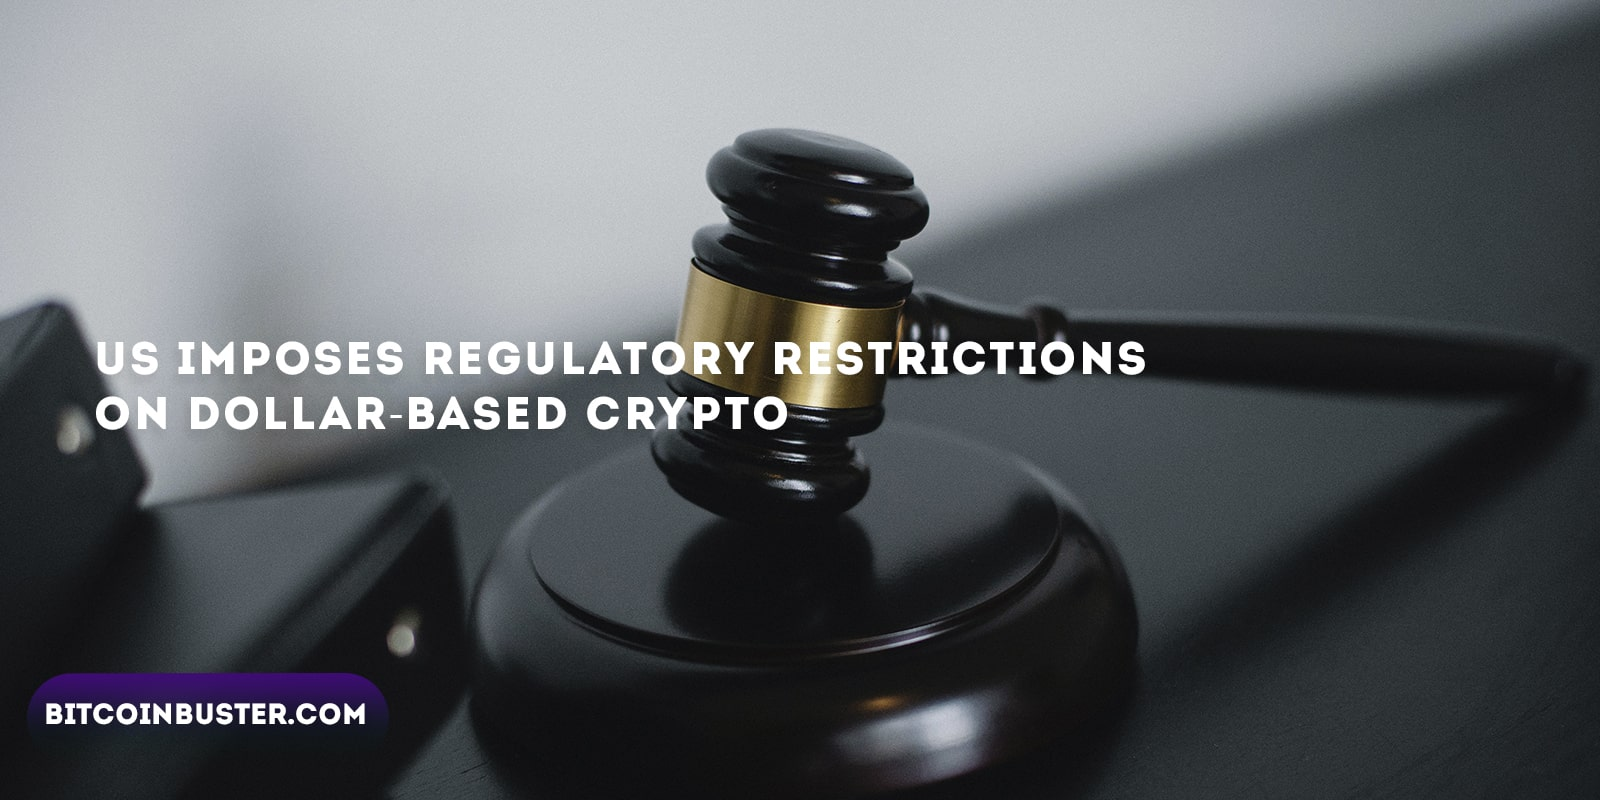 US Imposes Regulatory Restrictions on Dollar-based Crypto